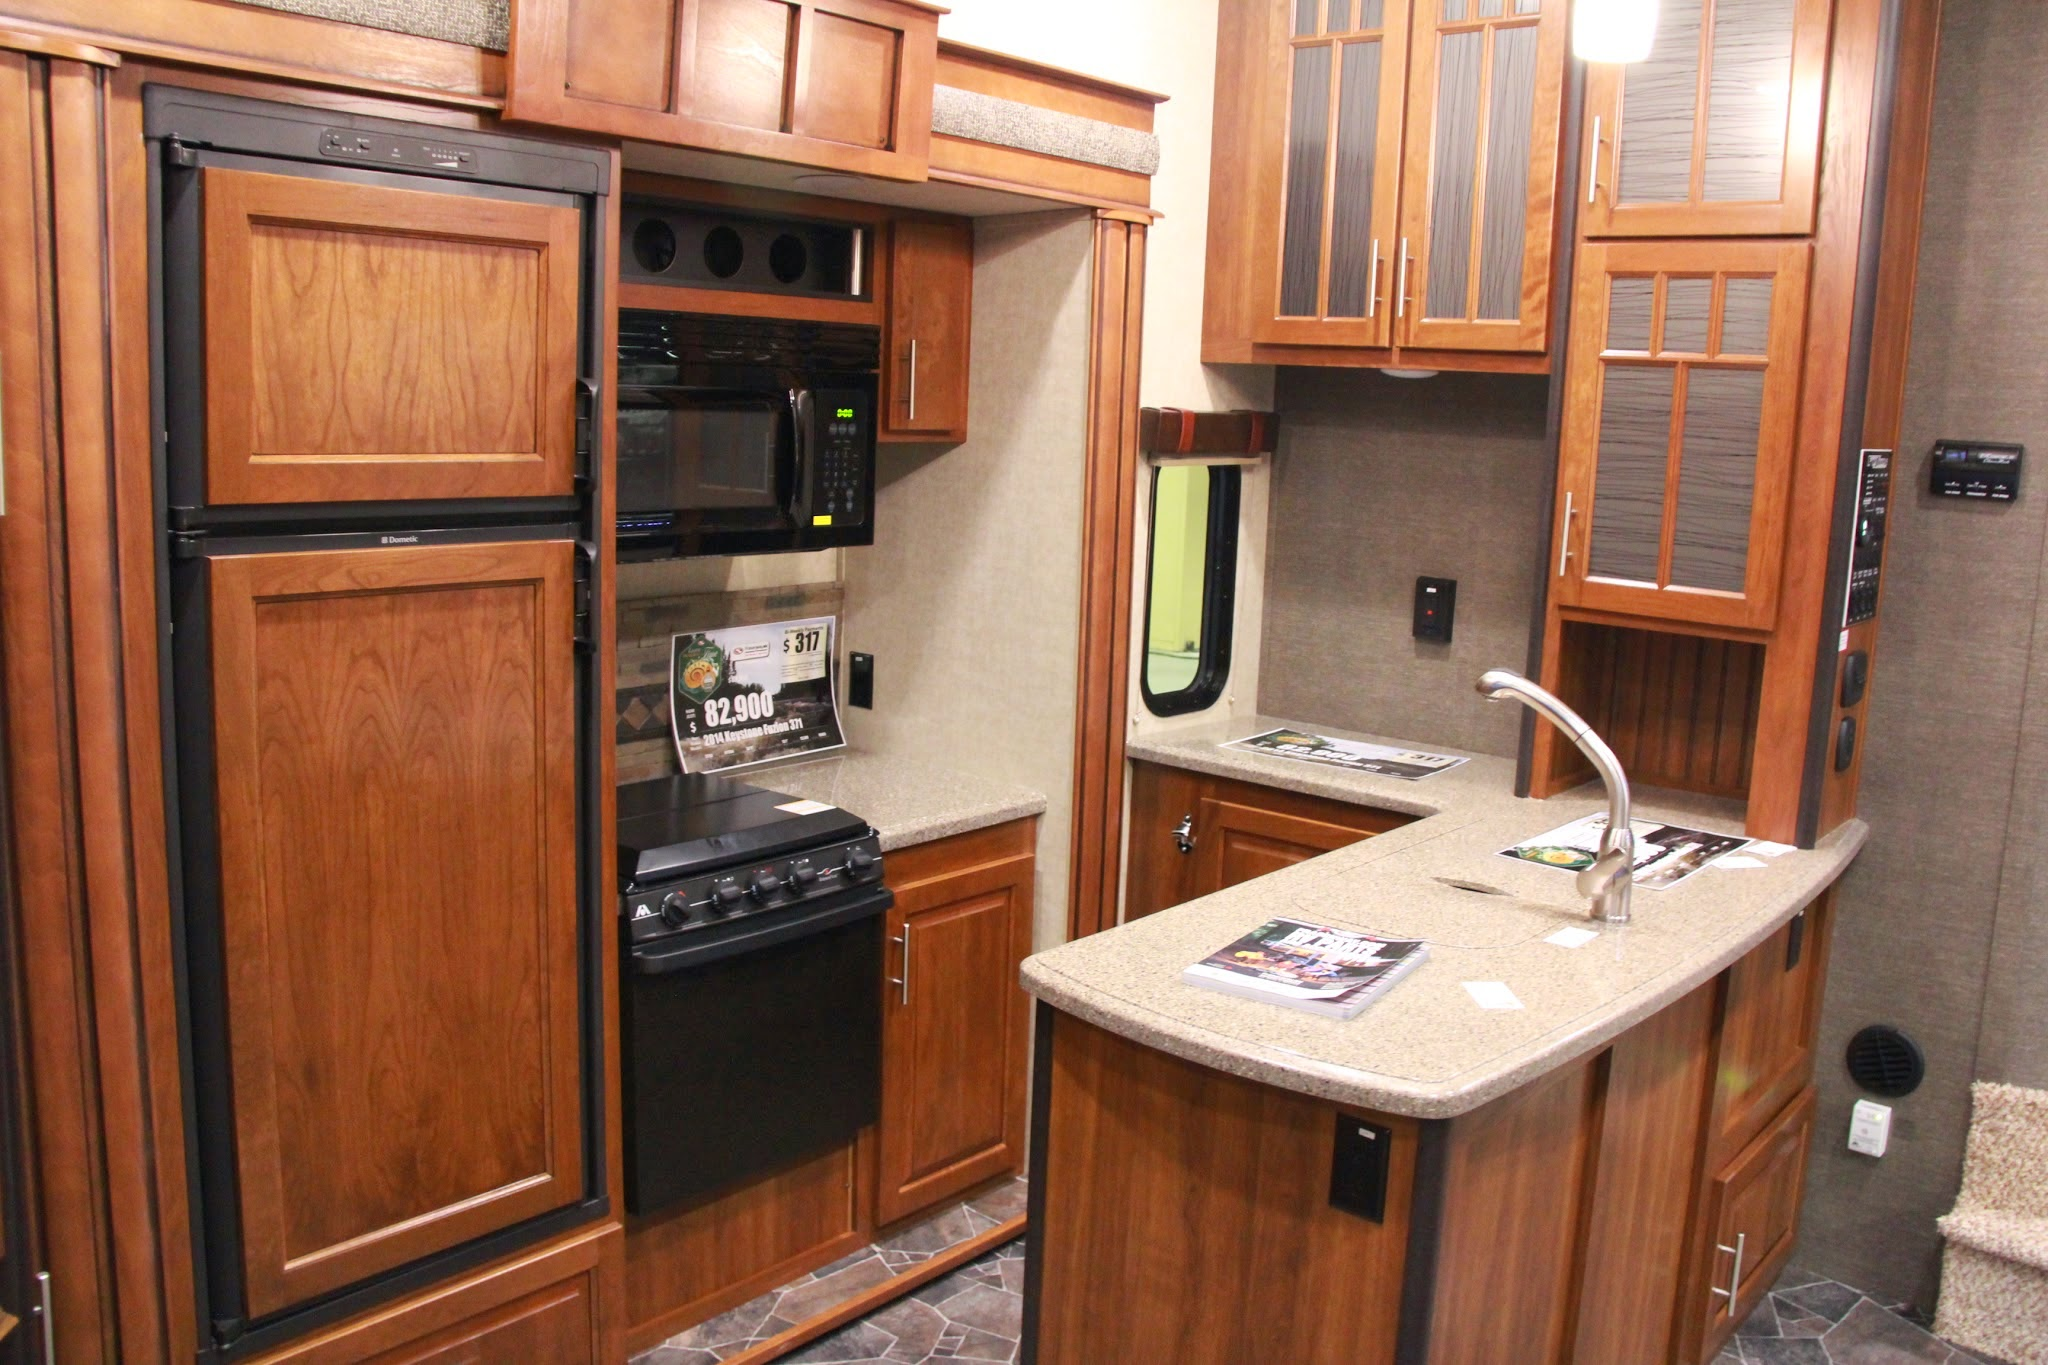 2014 keystone fuzion 371 rv kitchen lifestyle